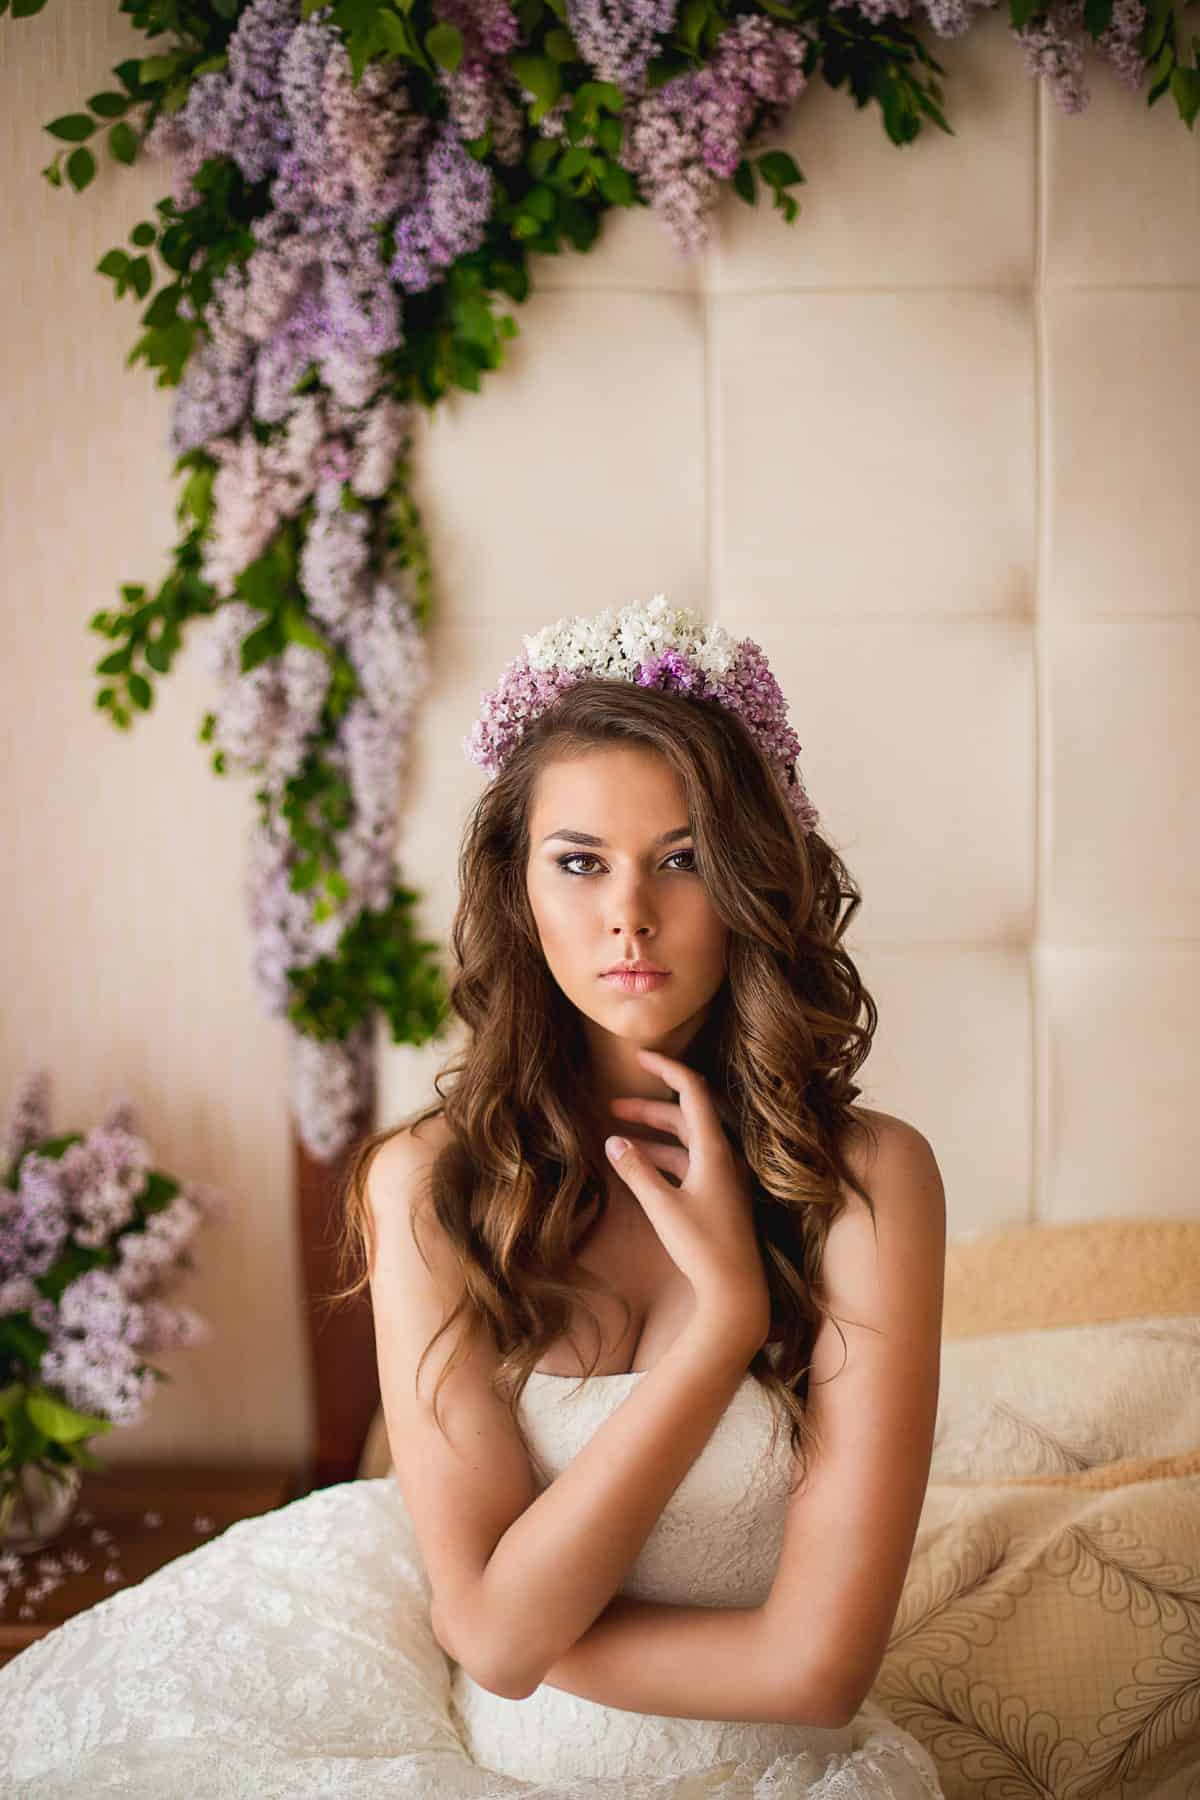 the bride in a wreath from a lilac lies on a bed, and nearby lilac flowers